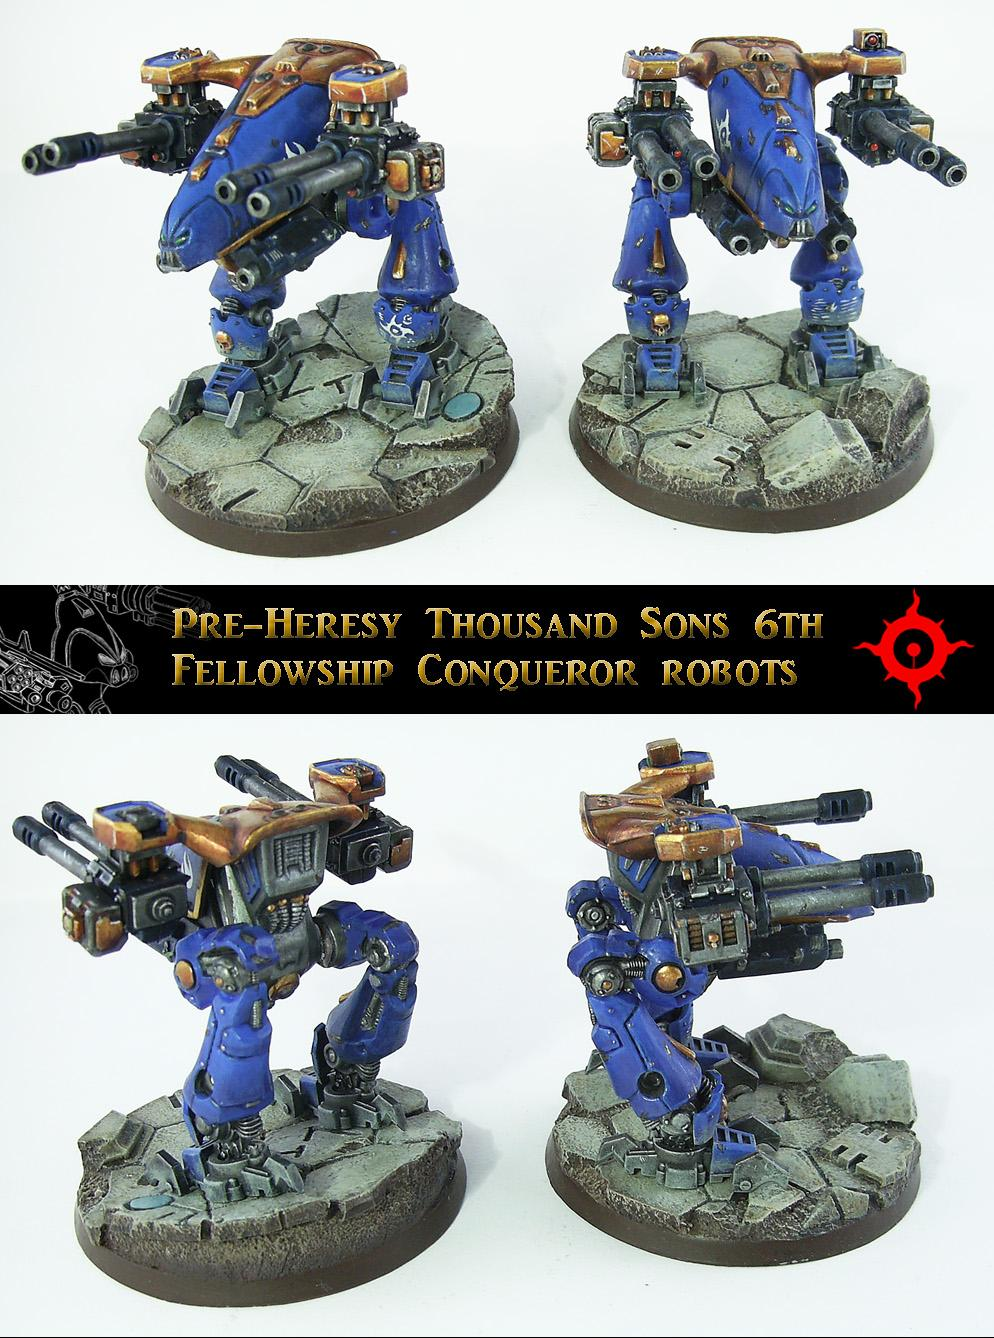 Adeptus Mechcanicus, Dreadnought, Legios Cybernetica, Robot, Robots, Rogue Trader, Space Crusade, Walker